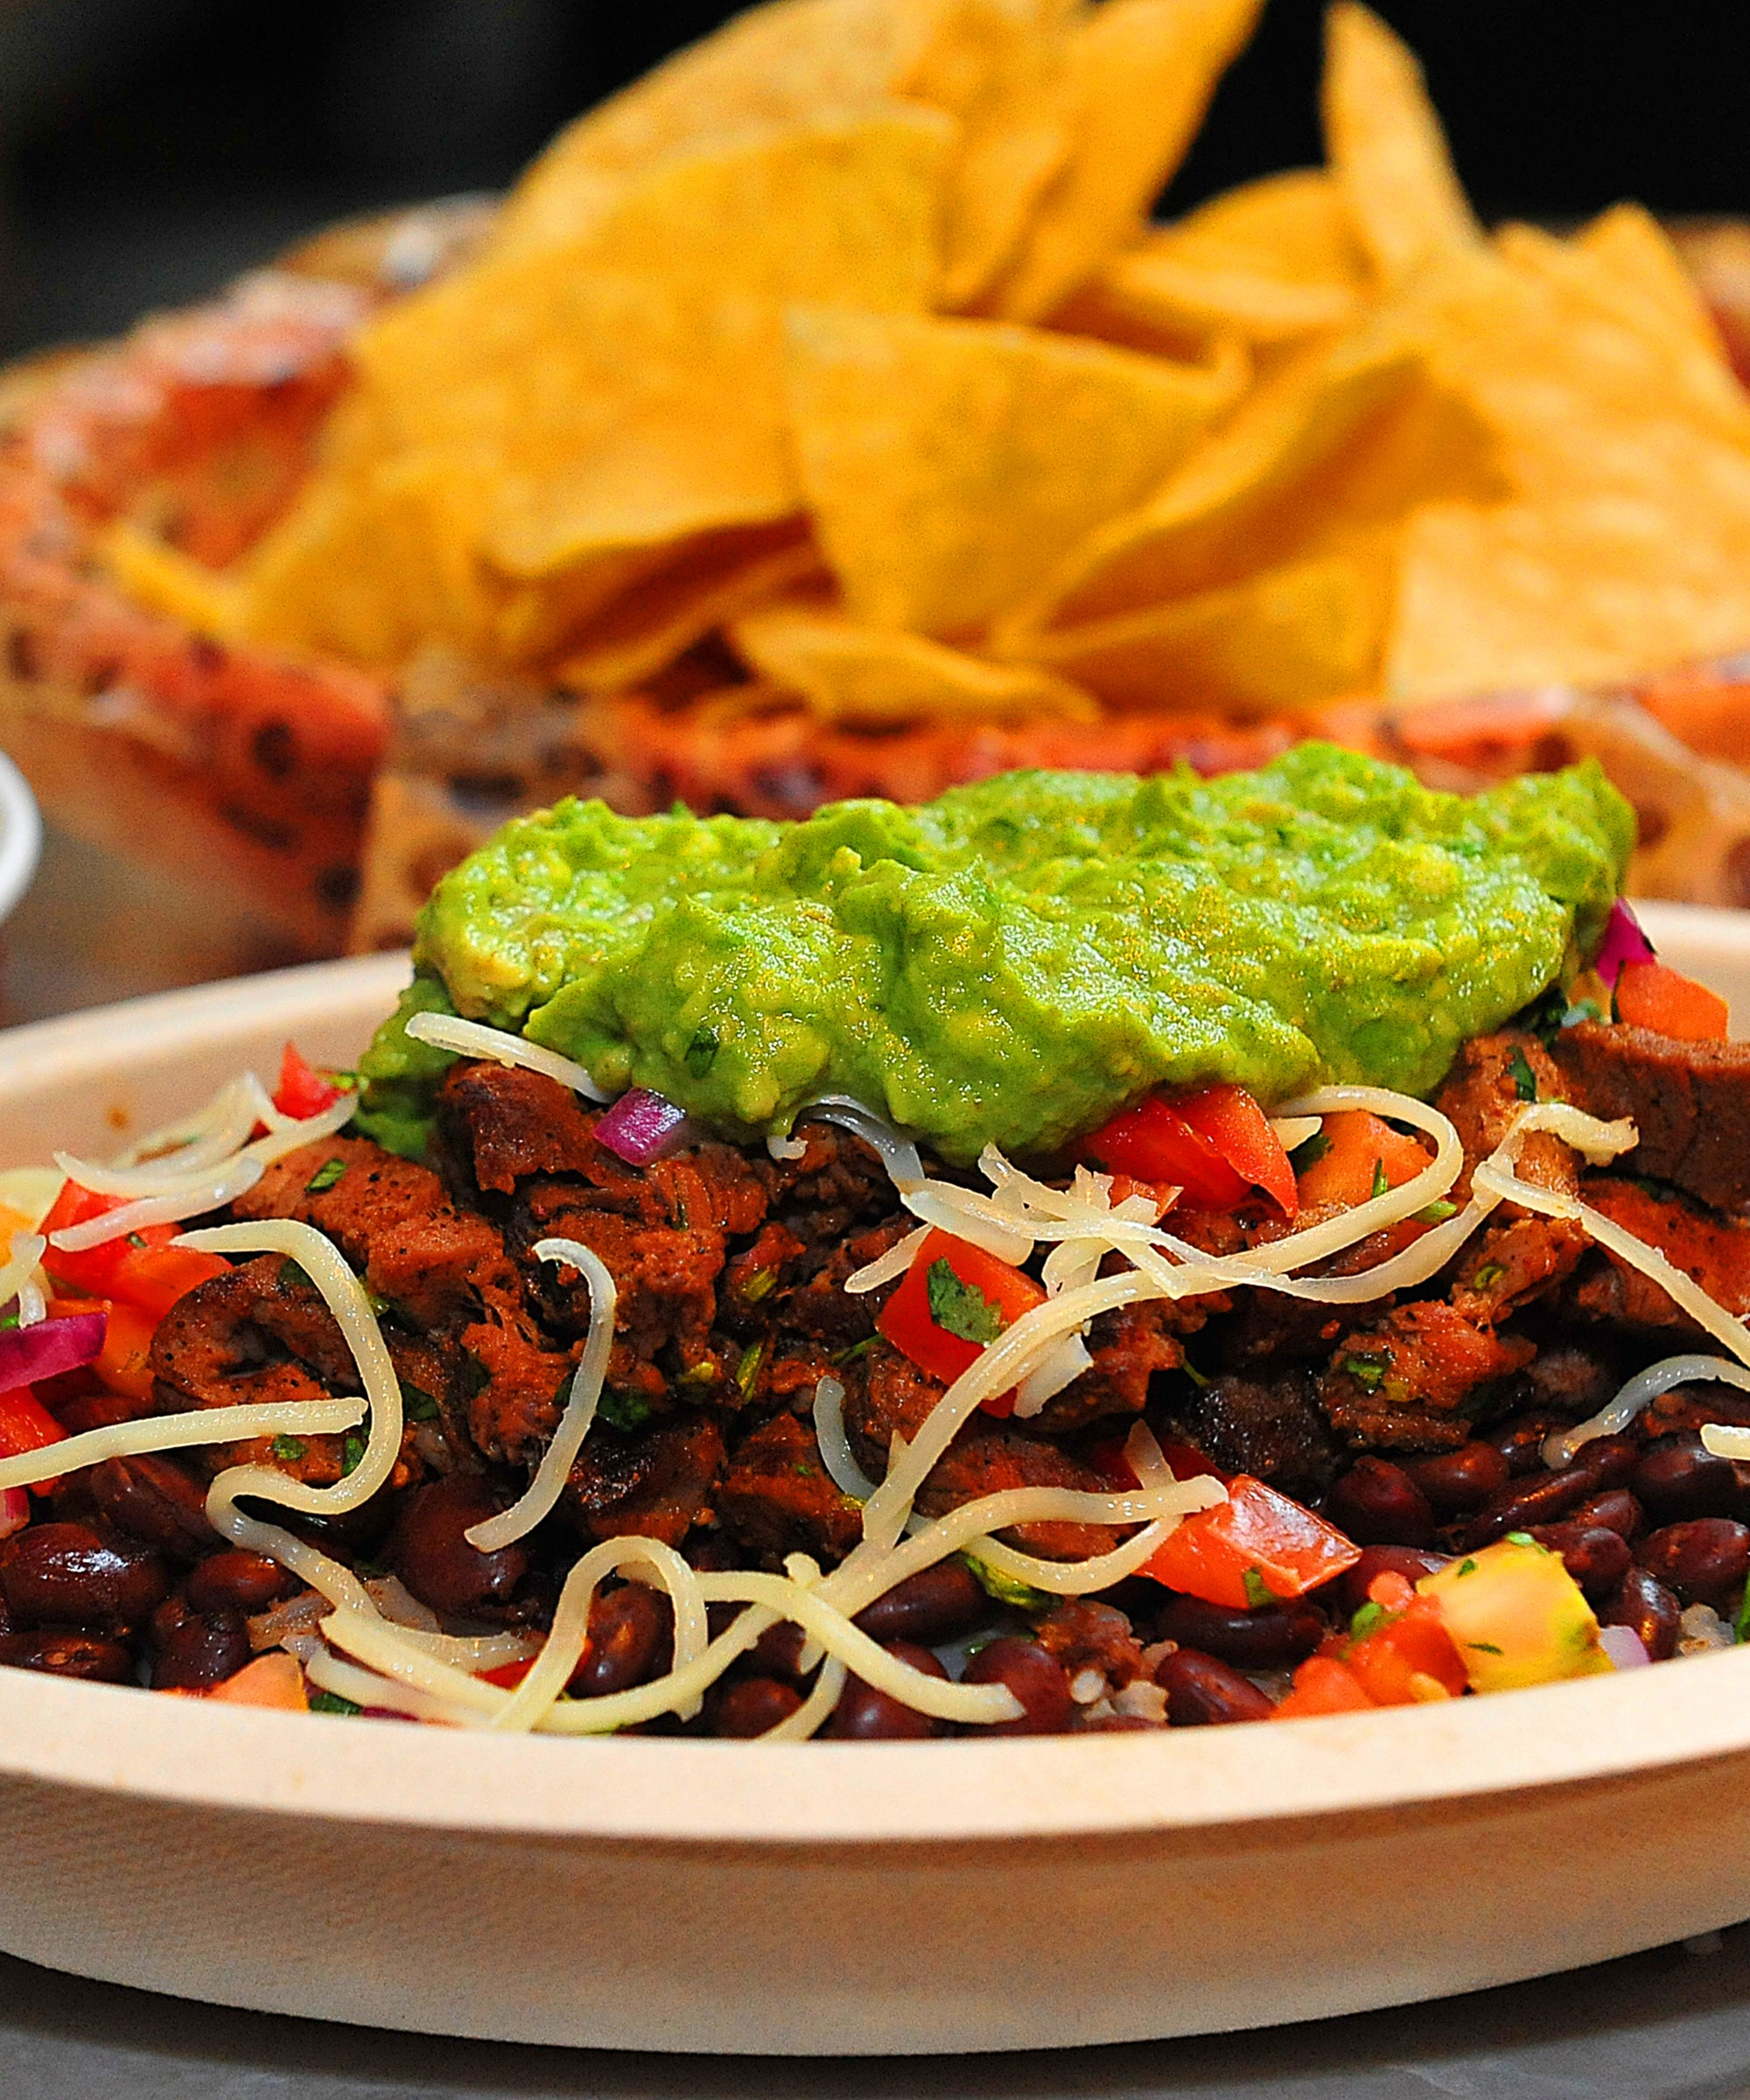 Chipotle Is Adding A New Protein Option To Its Menu